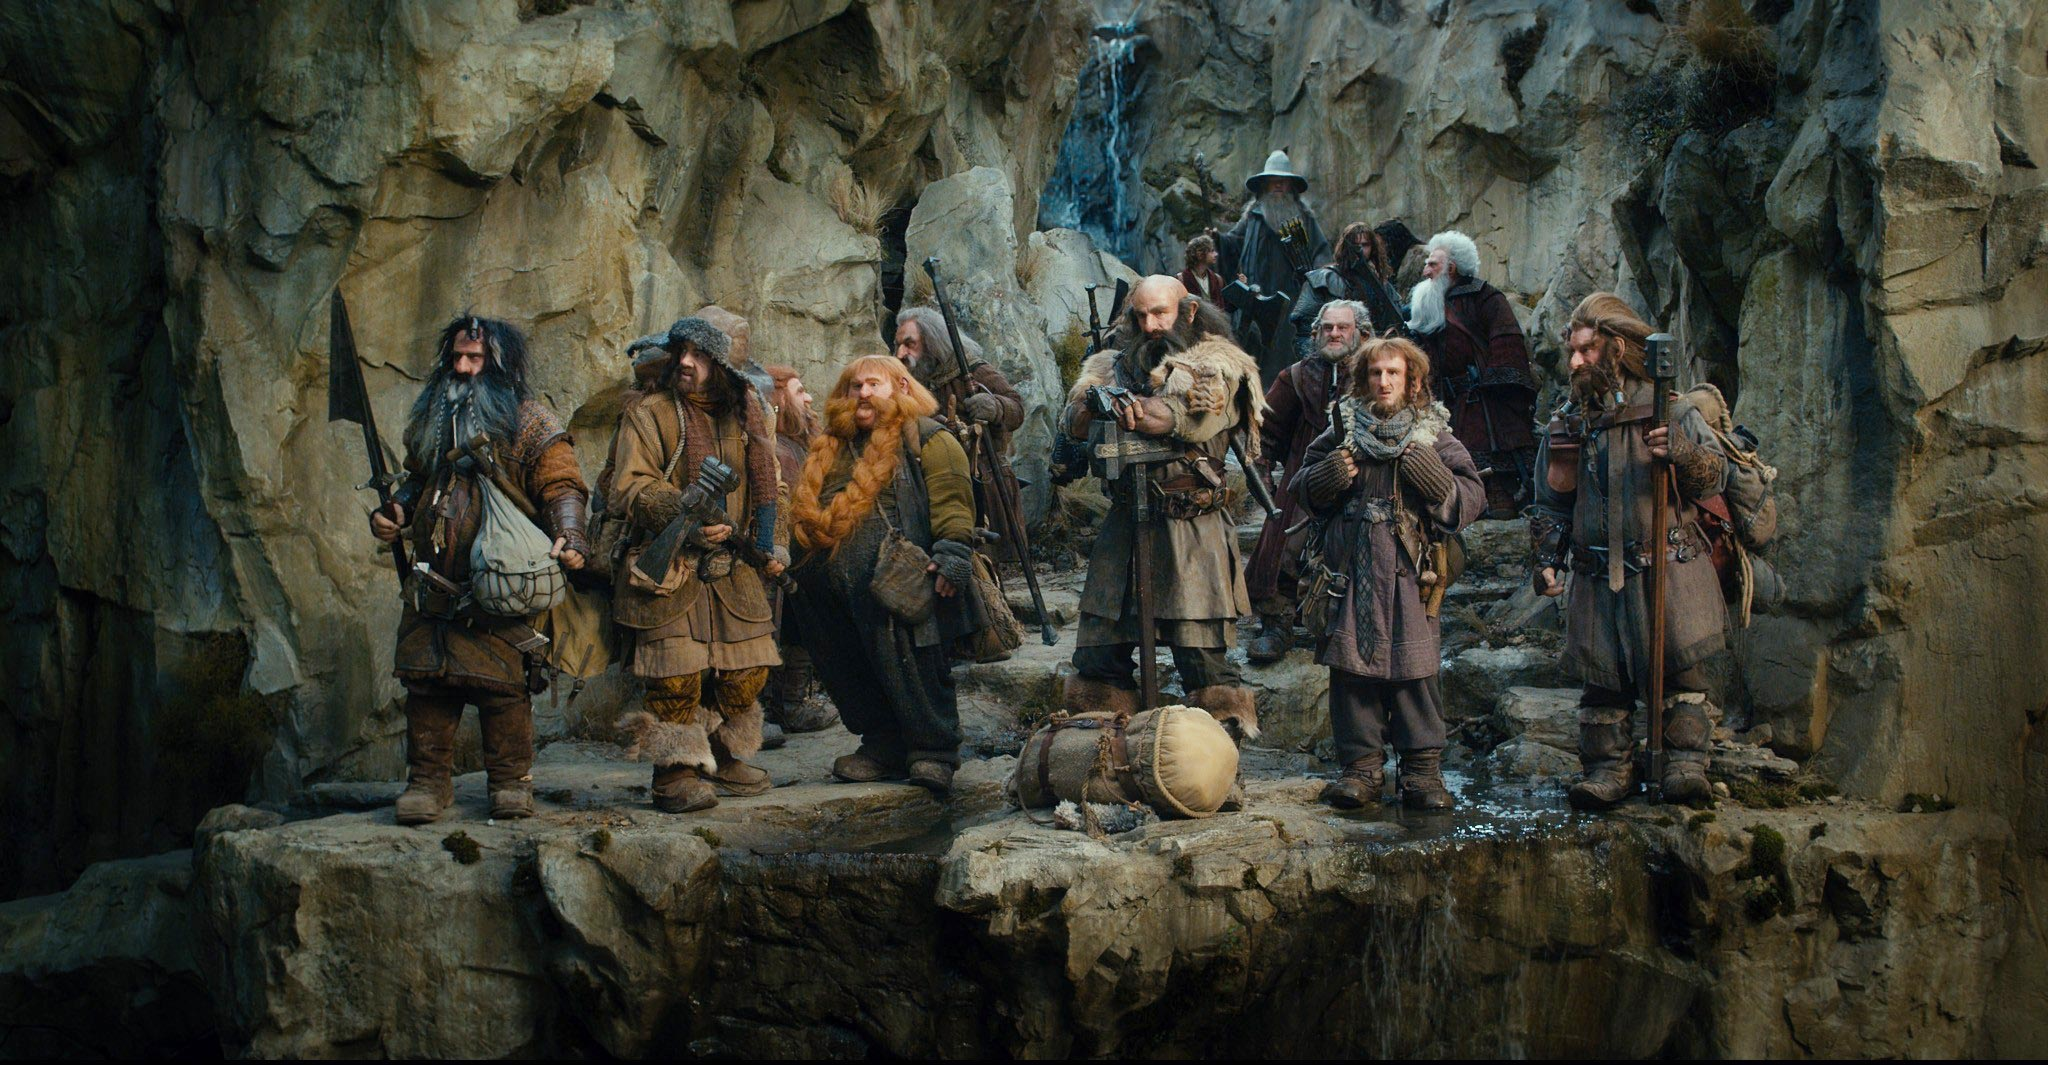 Hobbit unexpected journey really. All